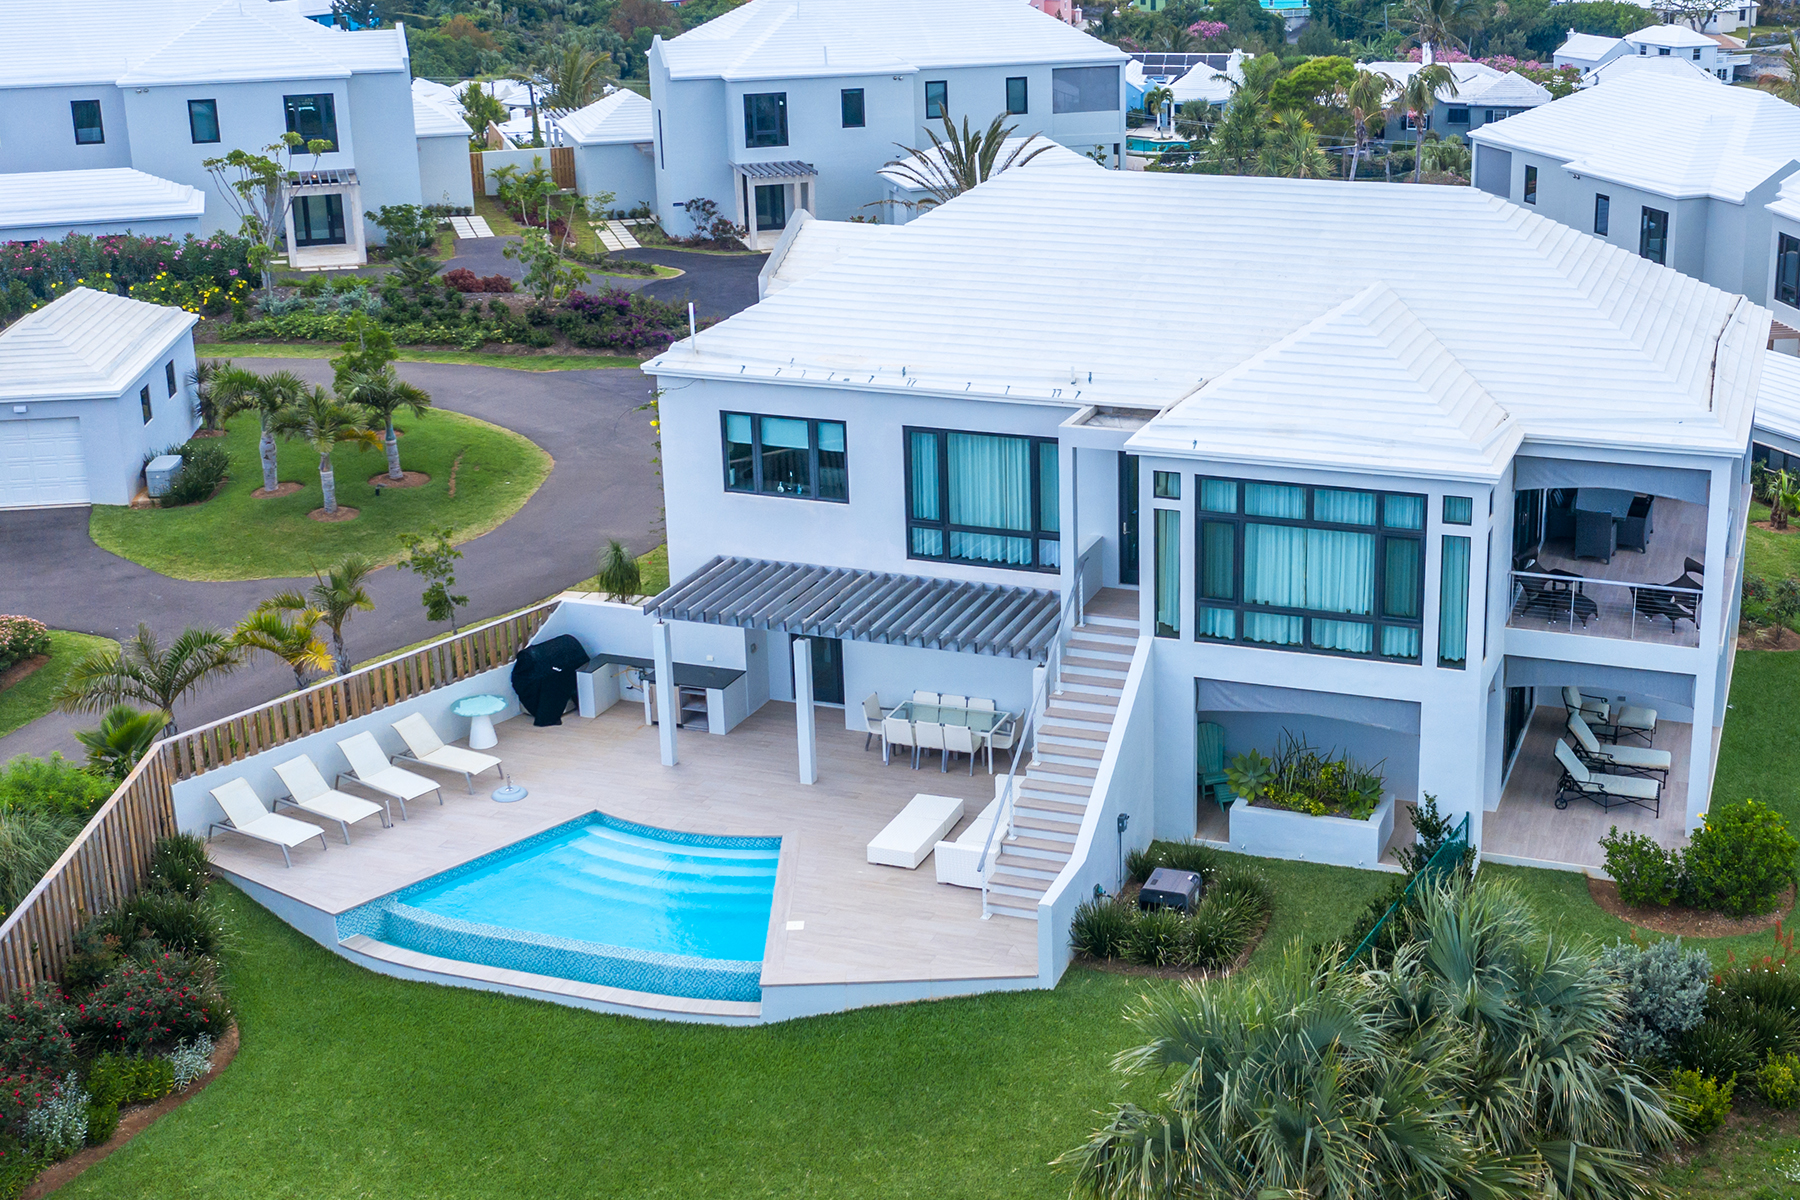 Single Family Homes for Sale at The Villas at The Loren - Sea Sweep 126 South Road Smiths, Other Areas In Bermuda HS 01 Bermuda